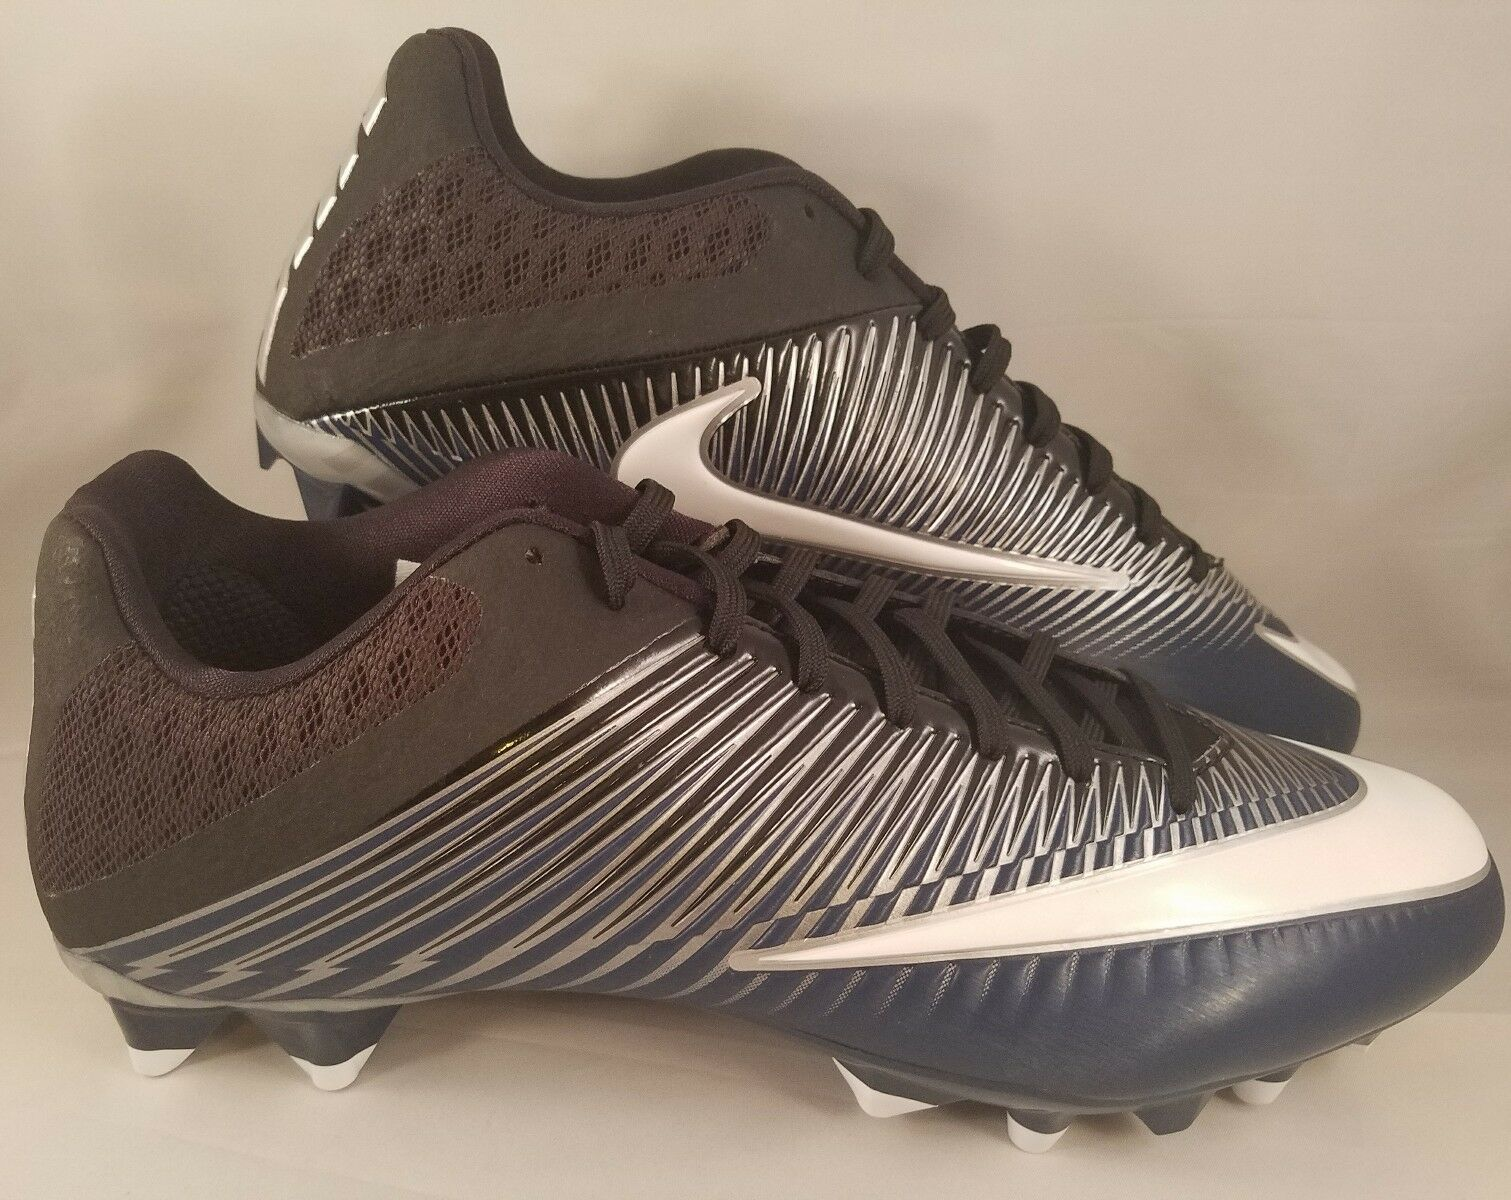 Nike Vapor Speed 2 TD Low Football Cleats Men's Comfortable Wild casual shoes